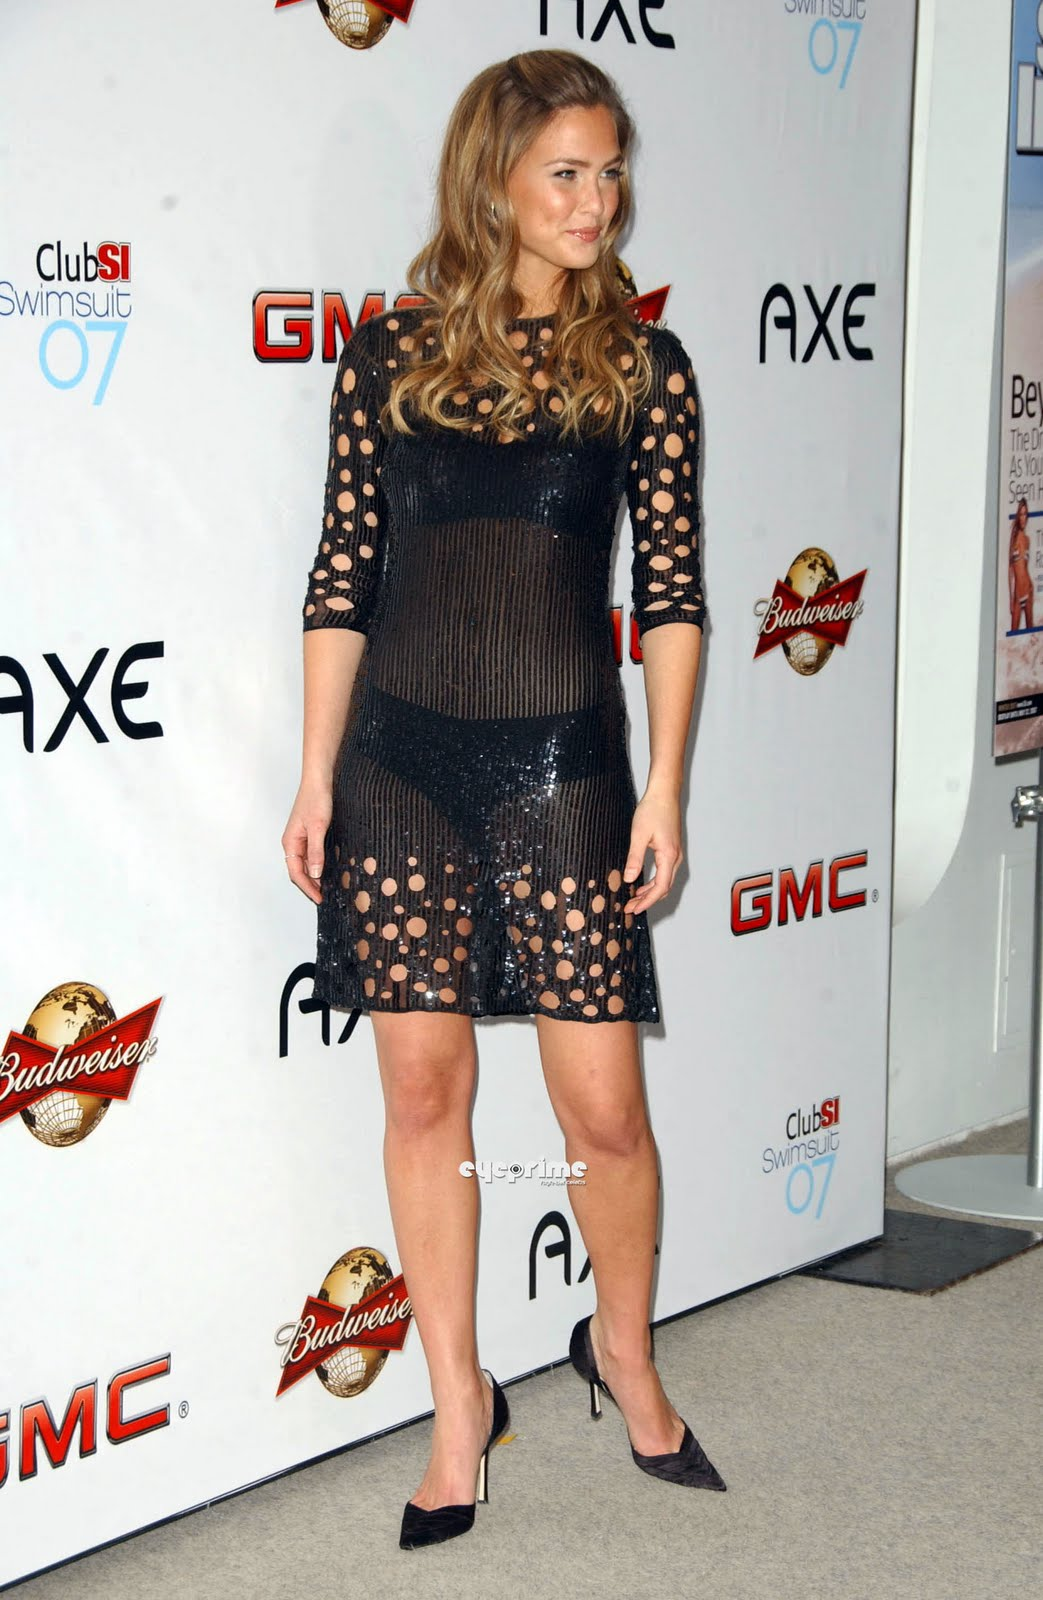 Wallpaper World Bar Refaeli Sexy Pictures By The 2007 -9187